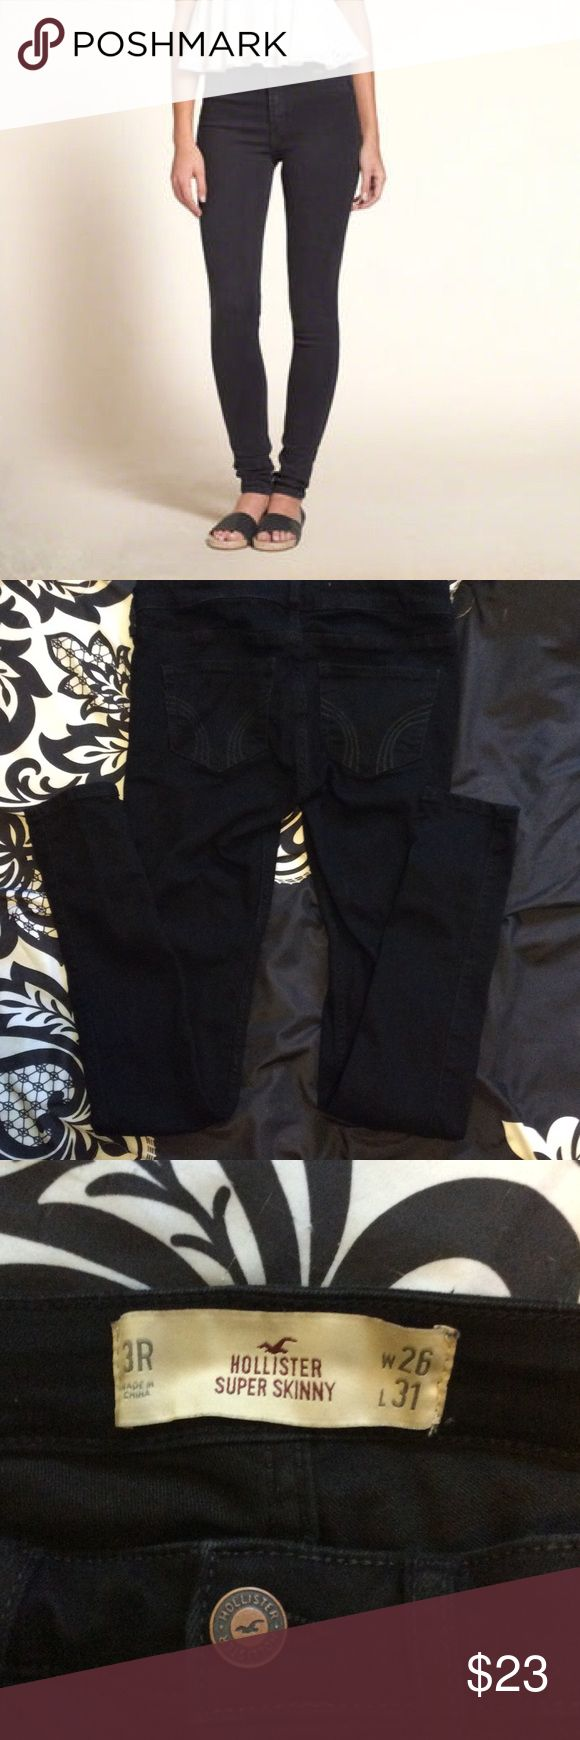 NWOT Black Hollister Super Skinny Jeans Bought them online but they were too small so I didn't bother returning them. Front two pockets are fake but the back two are real. Size 26 so they are about a size 2 or 3. Inseam: 31 inches Tags: Abercrombie and Fitch American Eagle Topshop Burberry Forever 21 Hollister Jeans Skinny